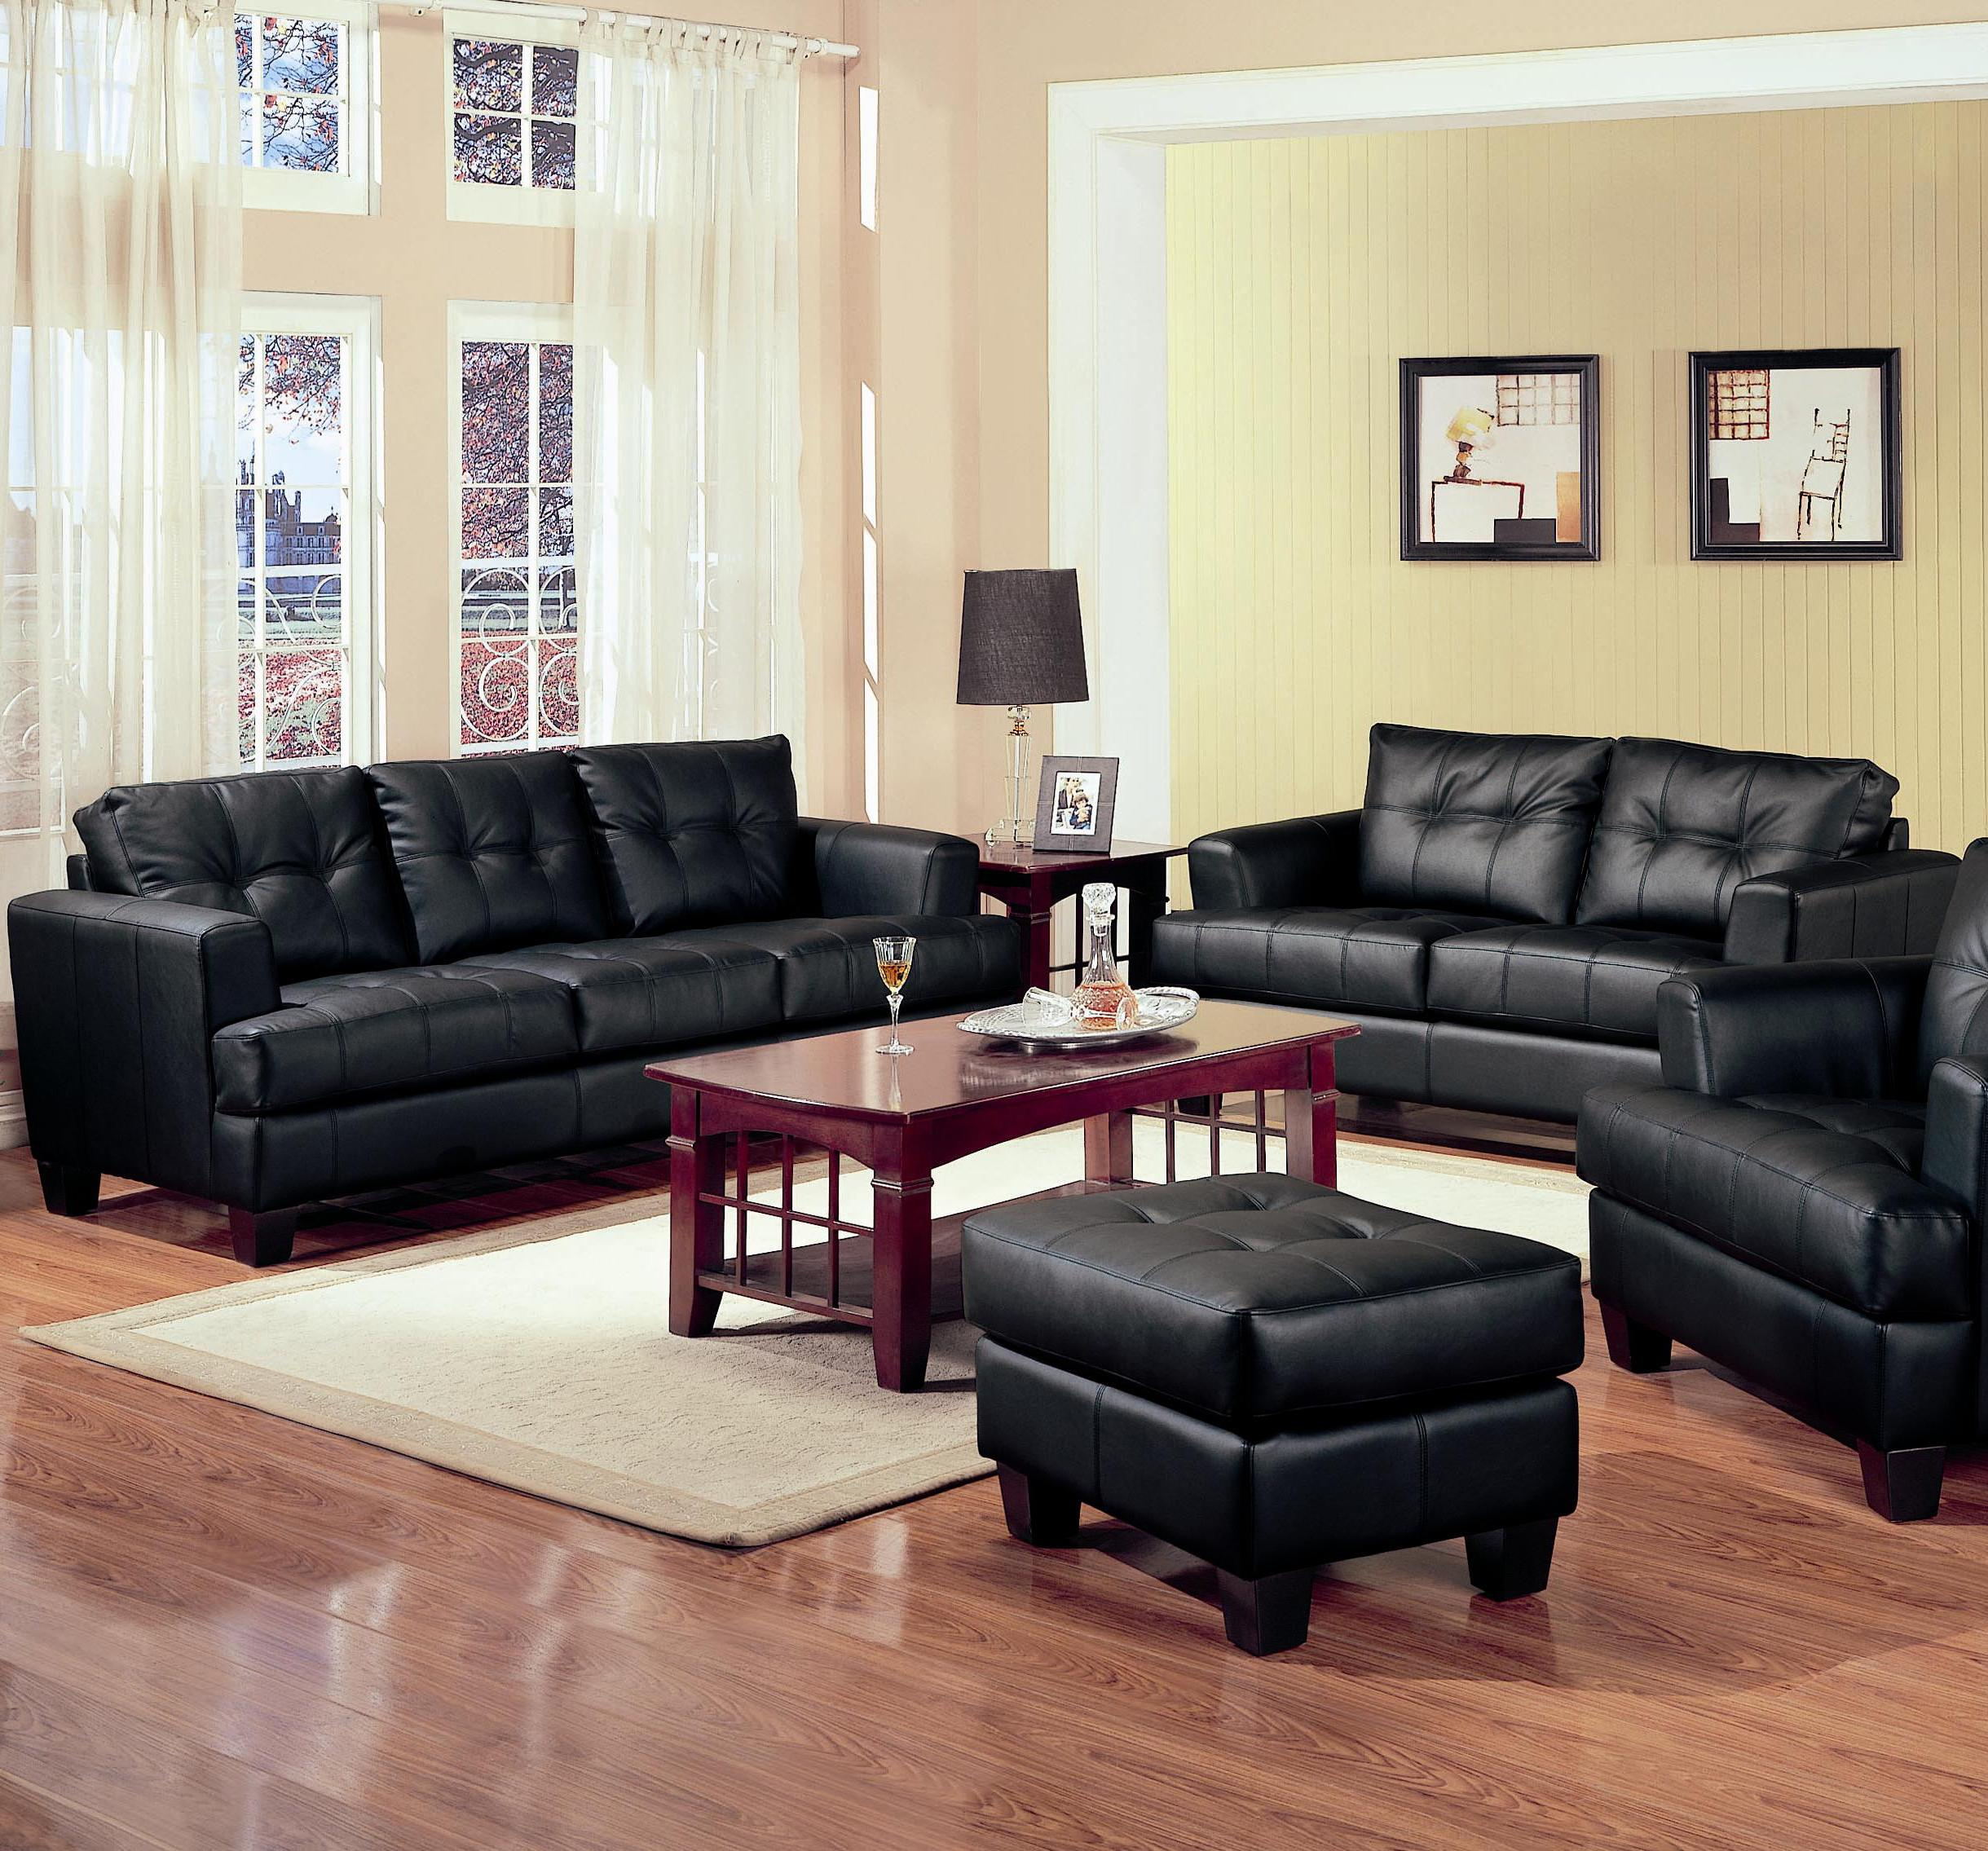 Samuel Leather Living Room Sets 501831 4 Colors Silver State regarding 10 Clever Tricks of How to Makeover Cheap Leather Living Room Sets